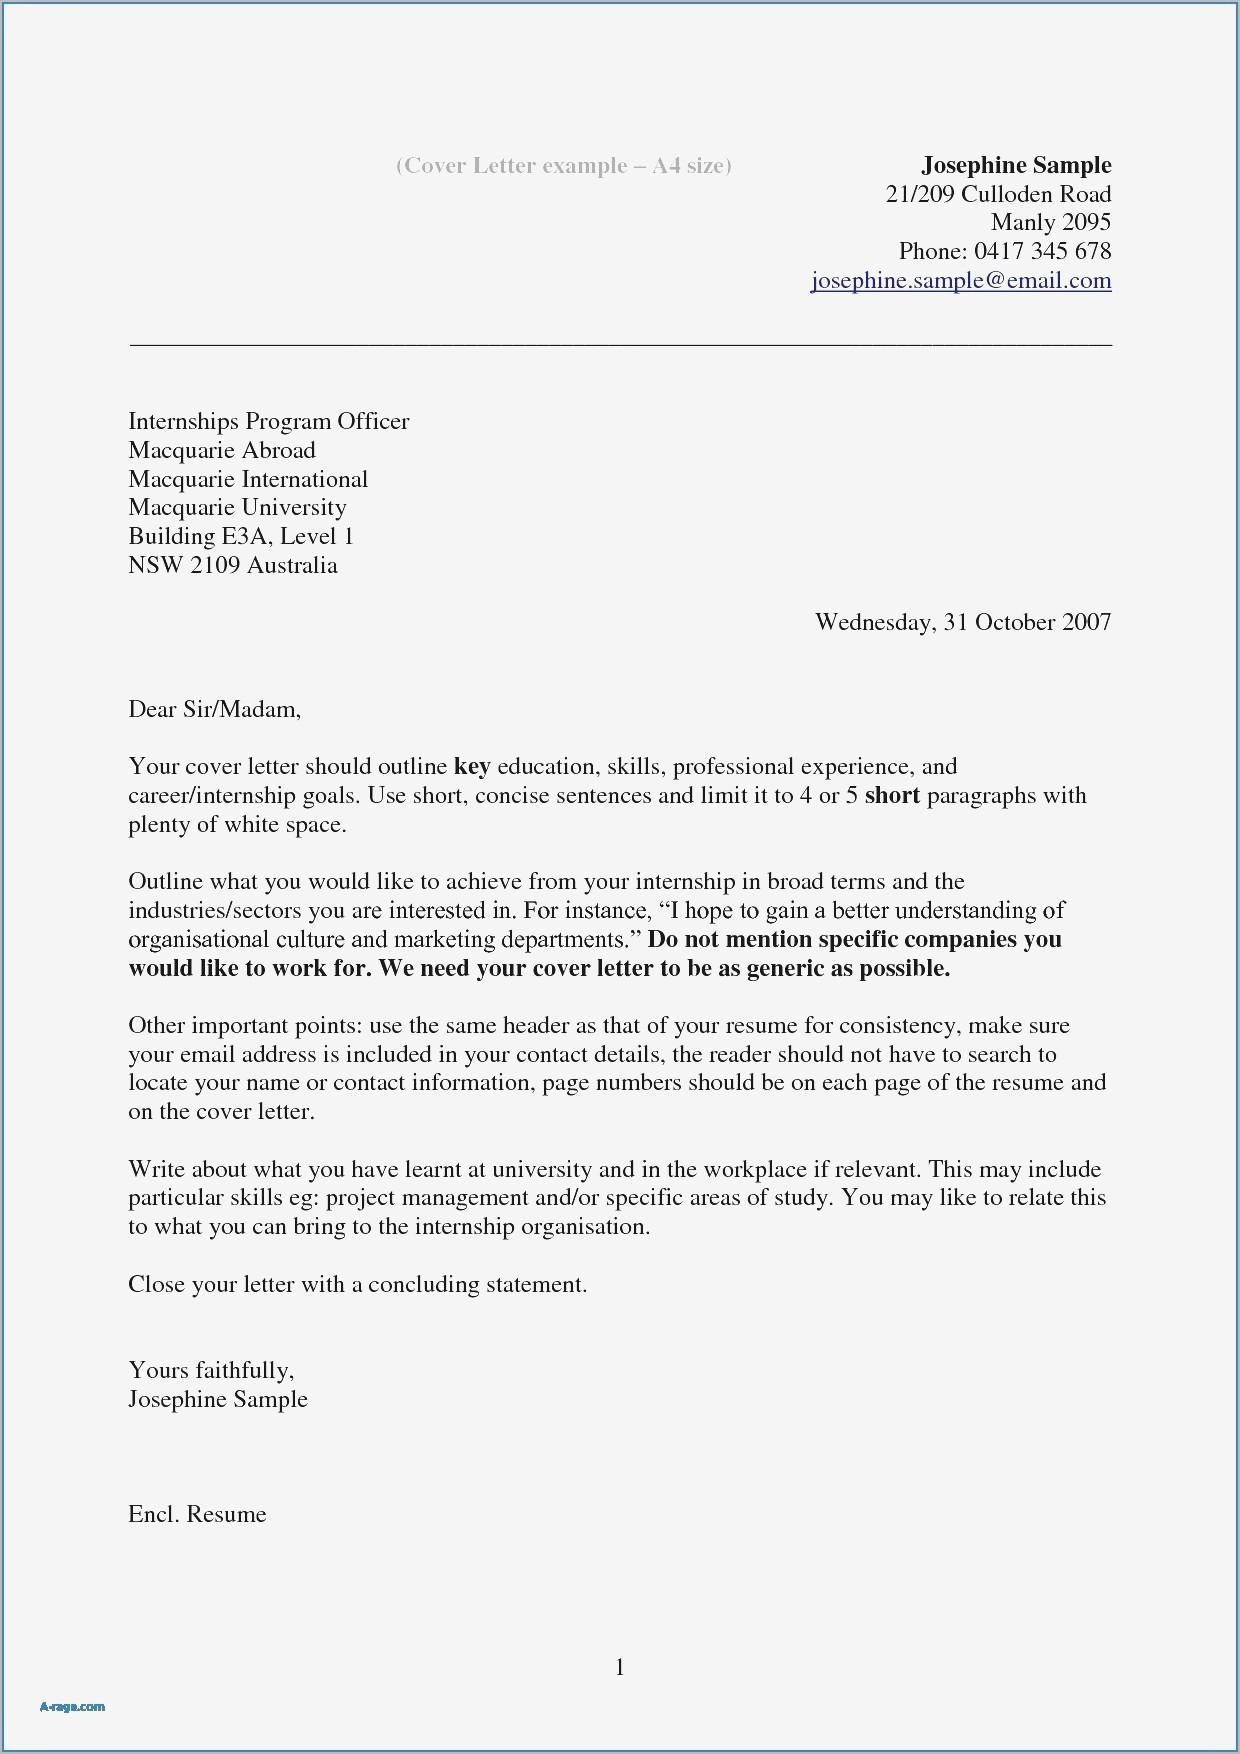 Email Letter Template - Free Resume Letter Templates Fresh Inspirational Pr Resume Template